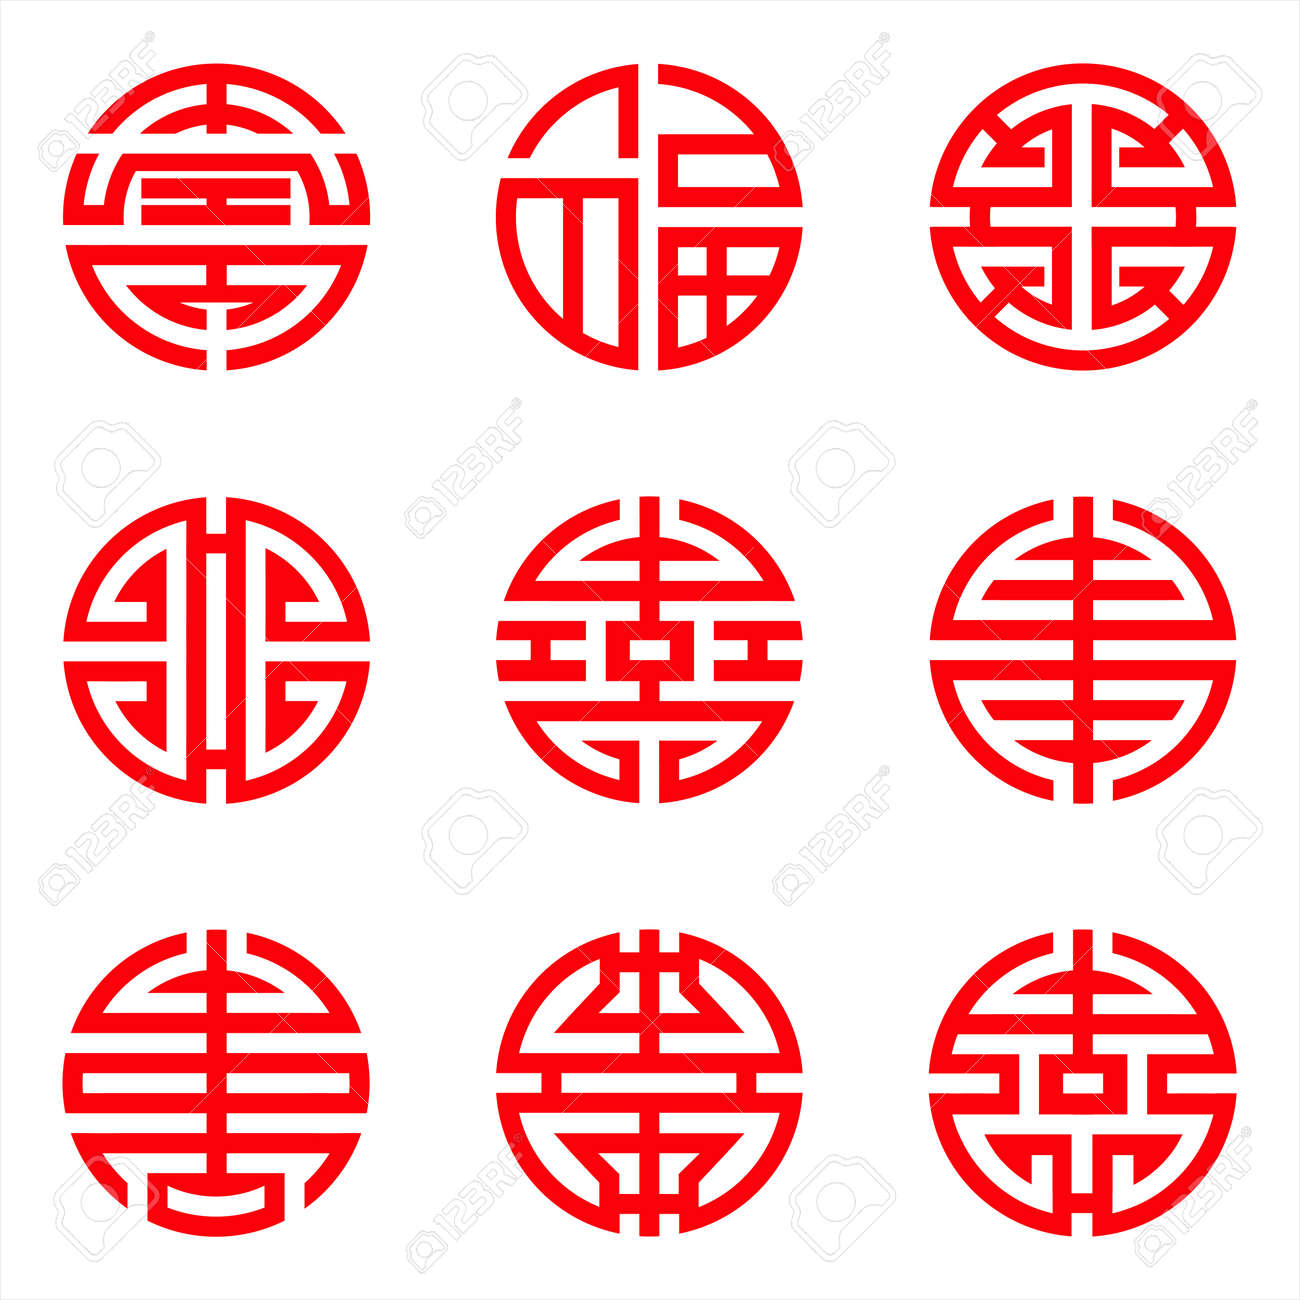 Traditional chinese lucky symbols for blessing people having traditional chinese lucky symbols for blessing people having a long life stock vector 68402404 biocorpaavc Gallery